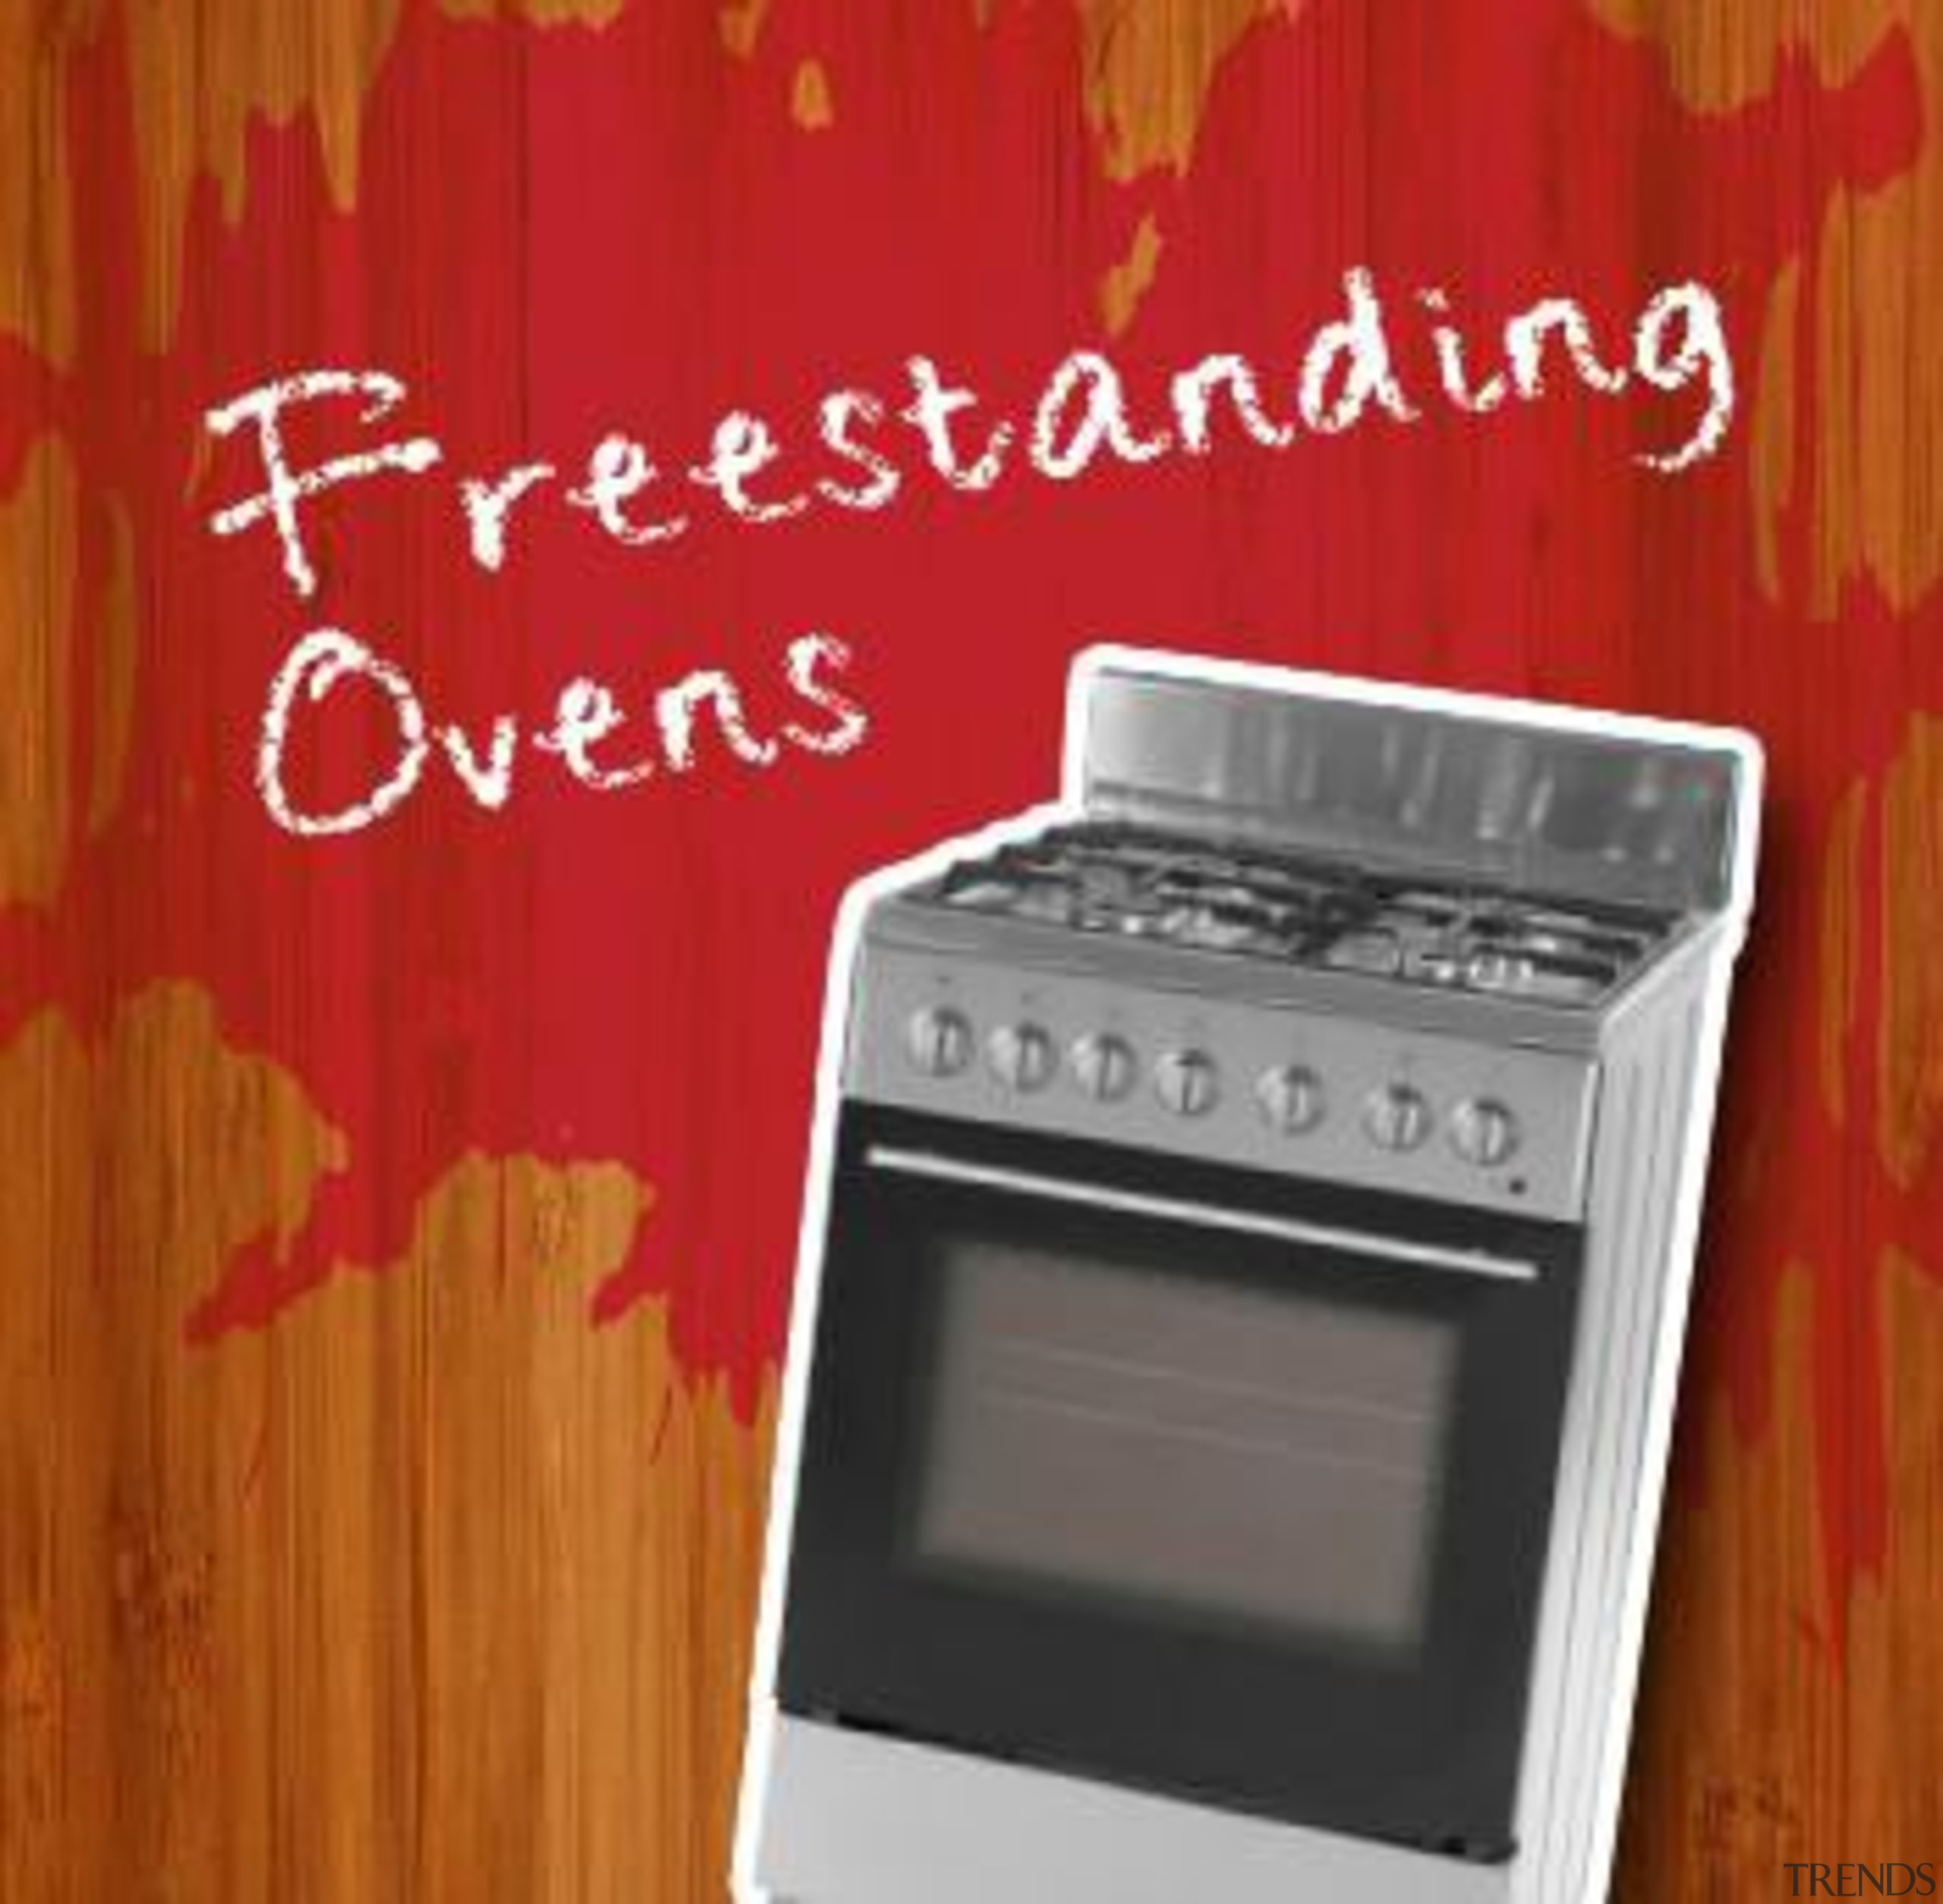 Baumatic brochure on our freestanding ovensFor more information, gas stove, home appliance, kitchen appliance, major appliance, product, red, brown